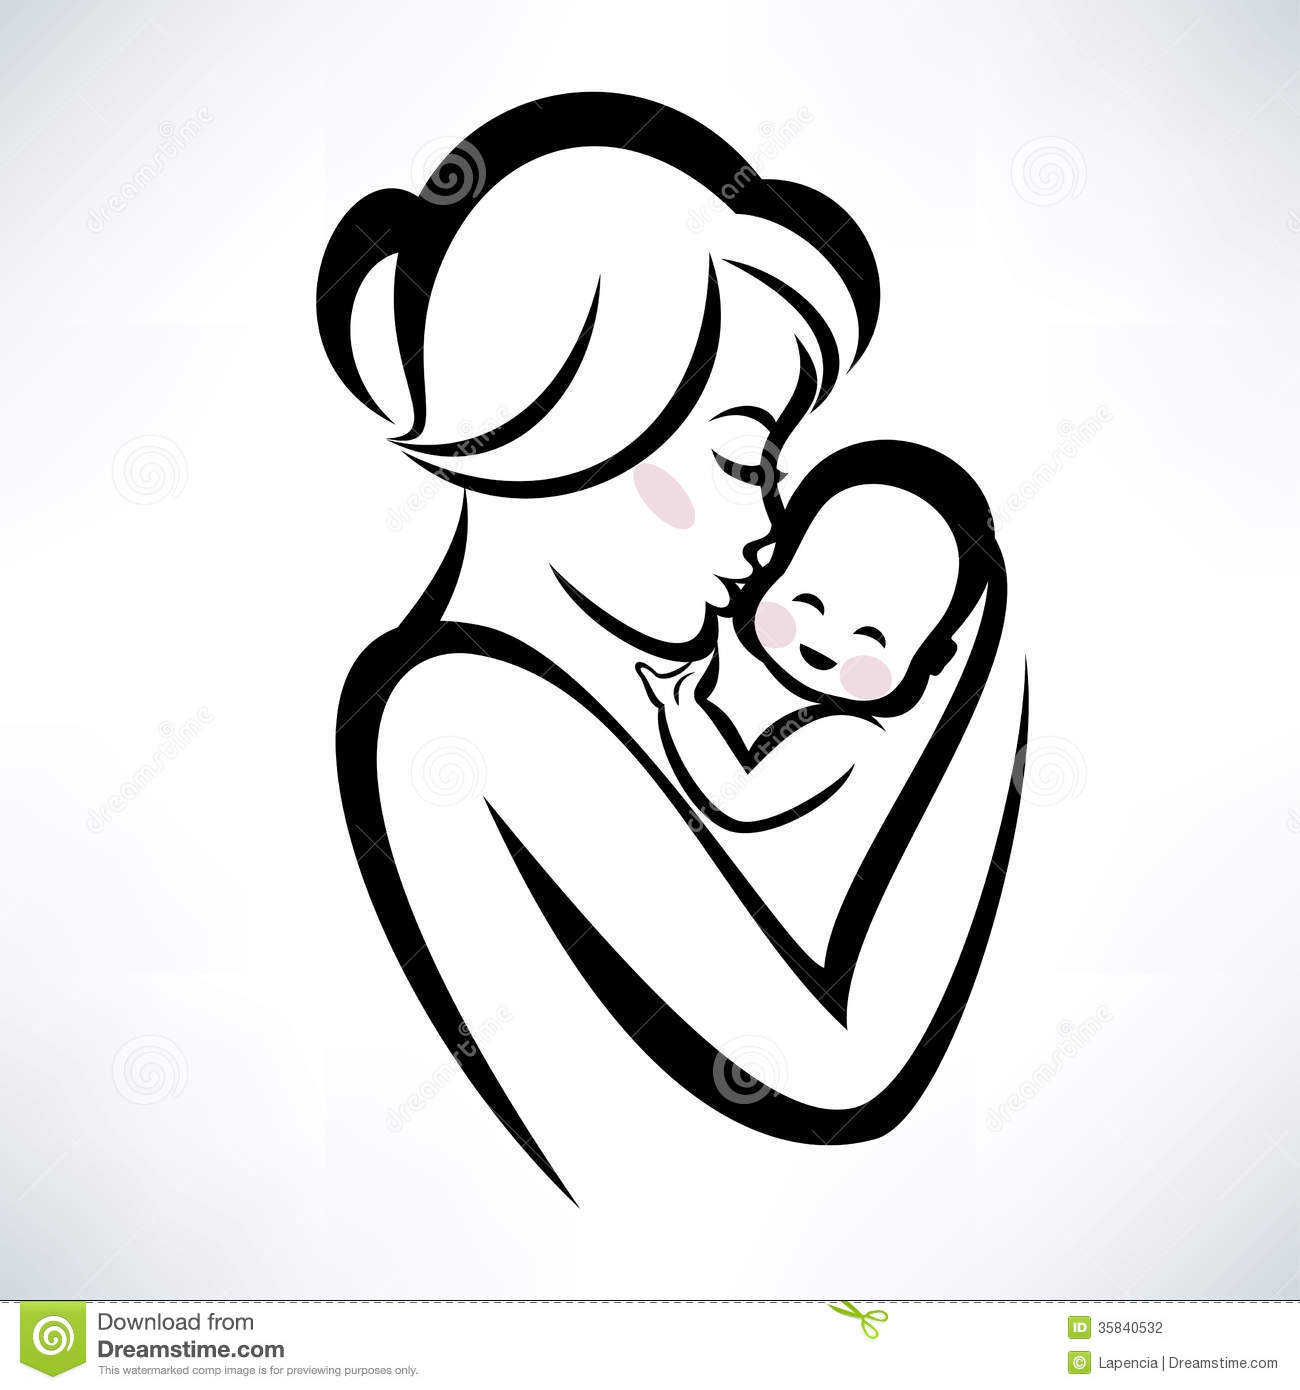 Mother and child clipart clip art royalty free stock 48+ Mom And Baby Clipart | ClipartLook clip art royalty free stock